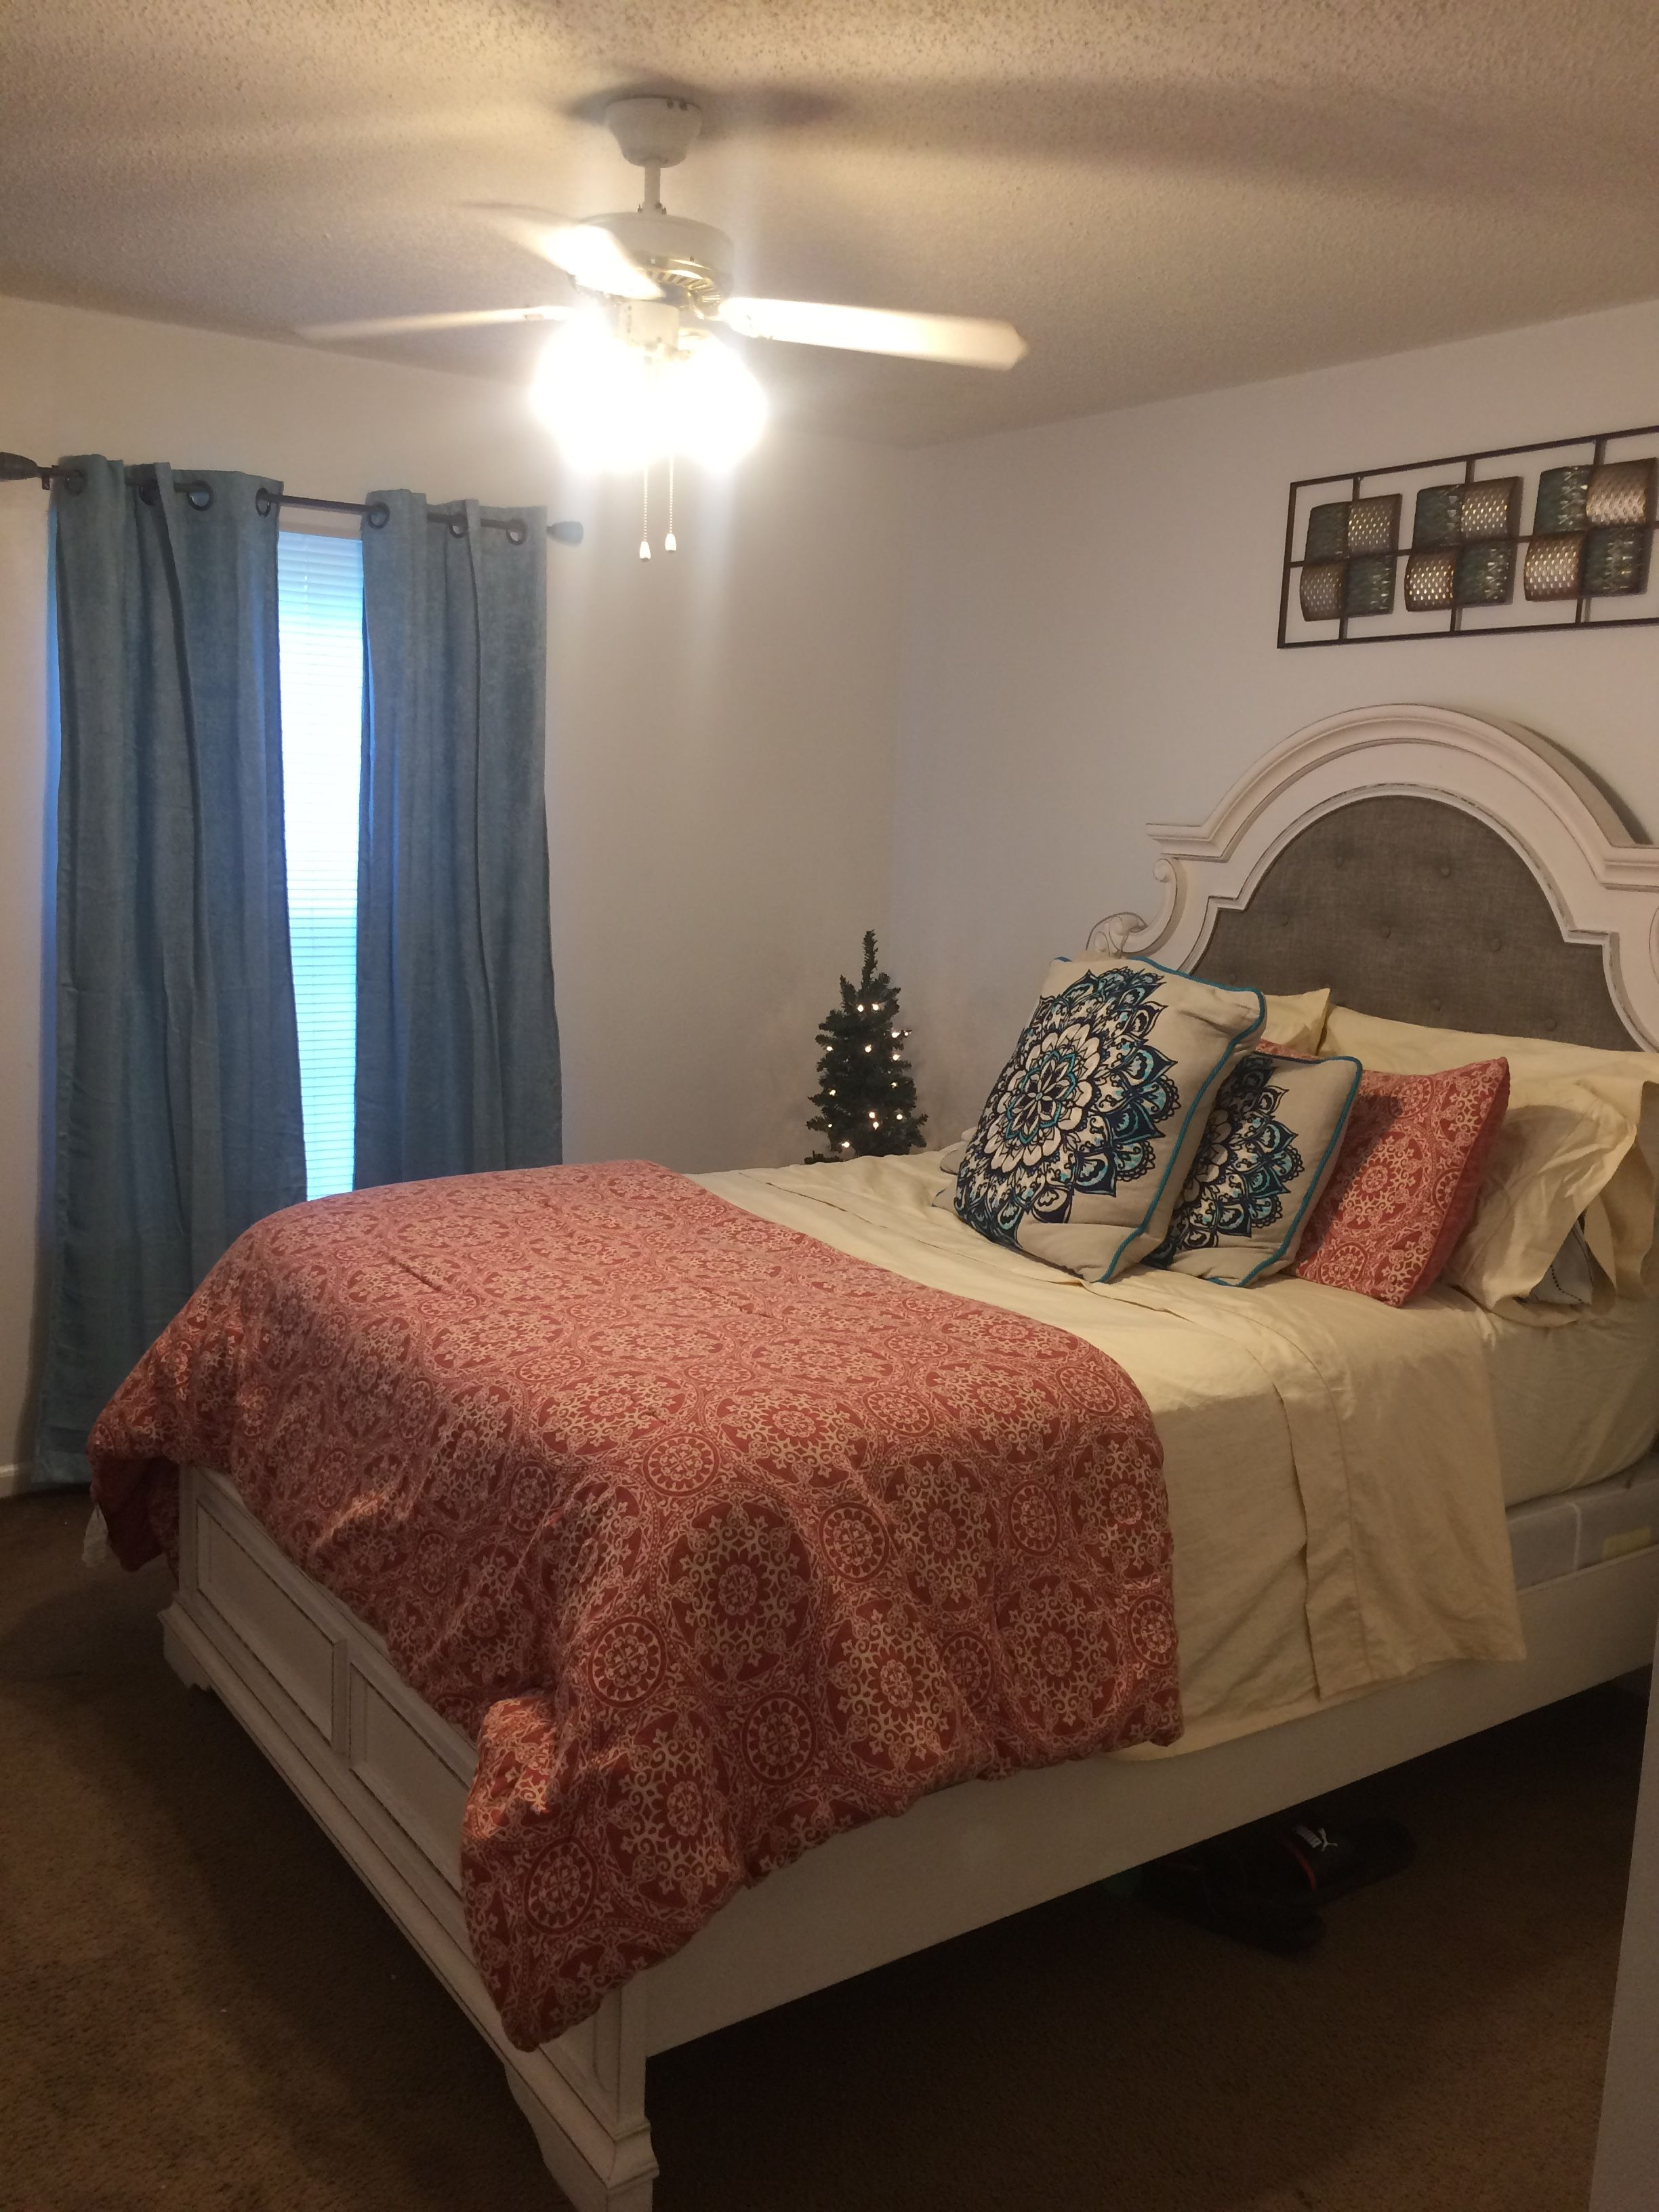 8x8 Bedroom Design: Pin By Jaime Allred On Apartment (With Images)